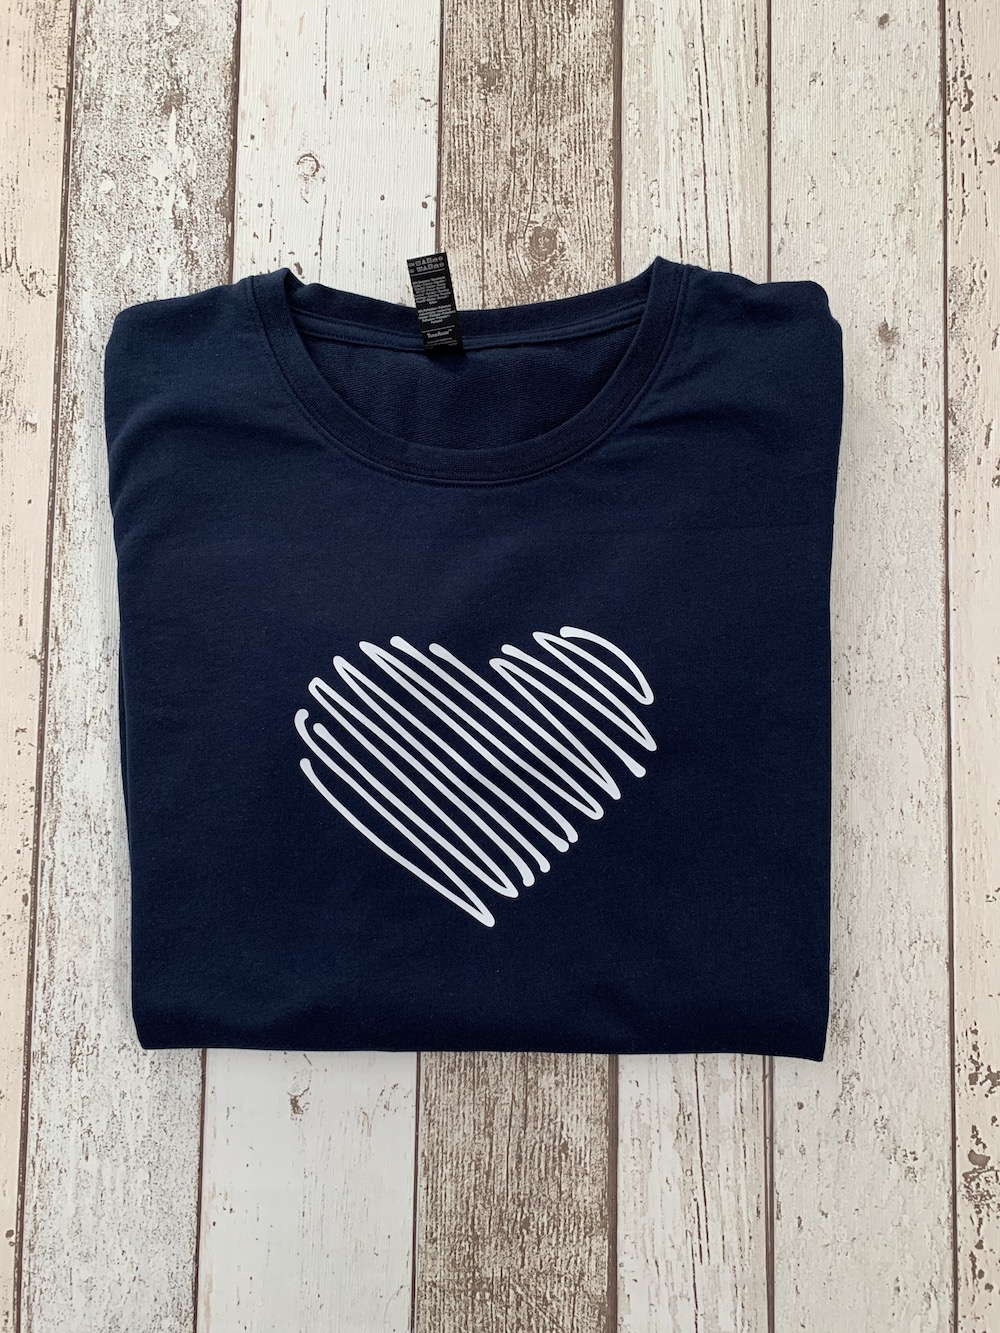 Scribble Heart Boyfriend Fit Sweatshirt – Navy And White